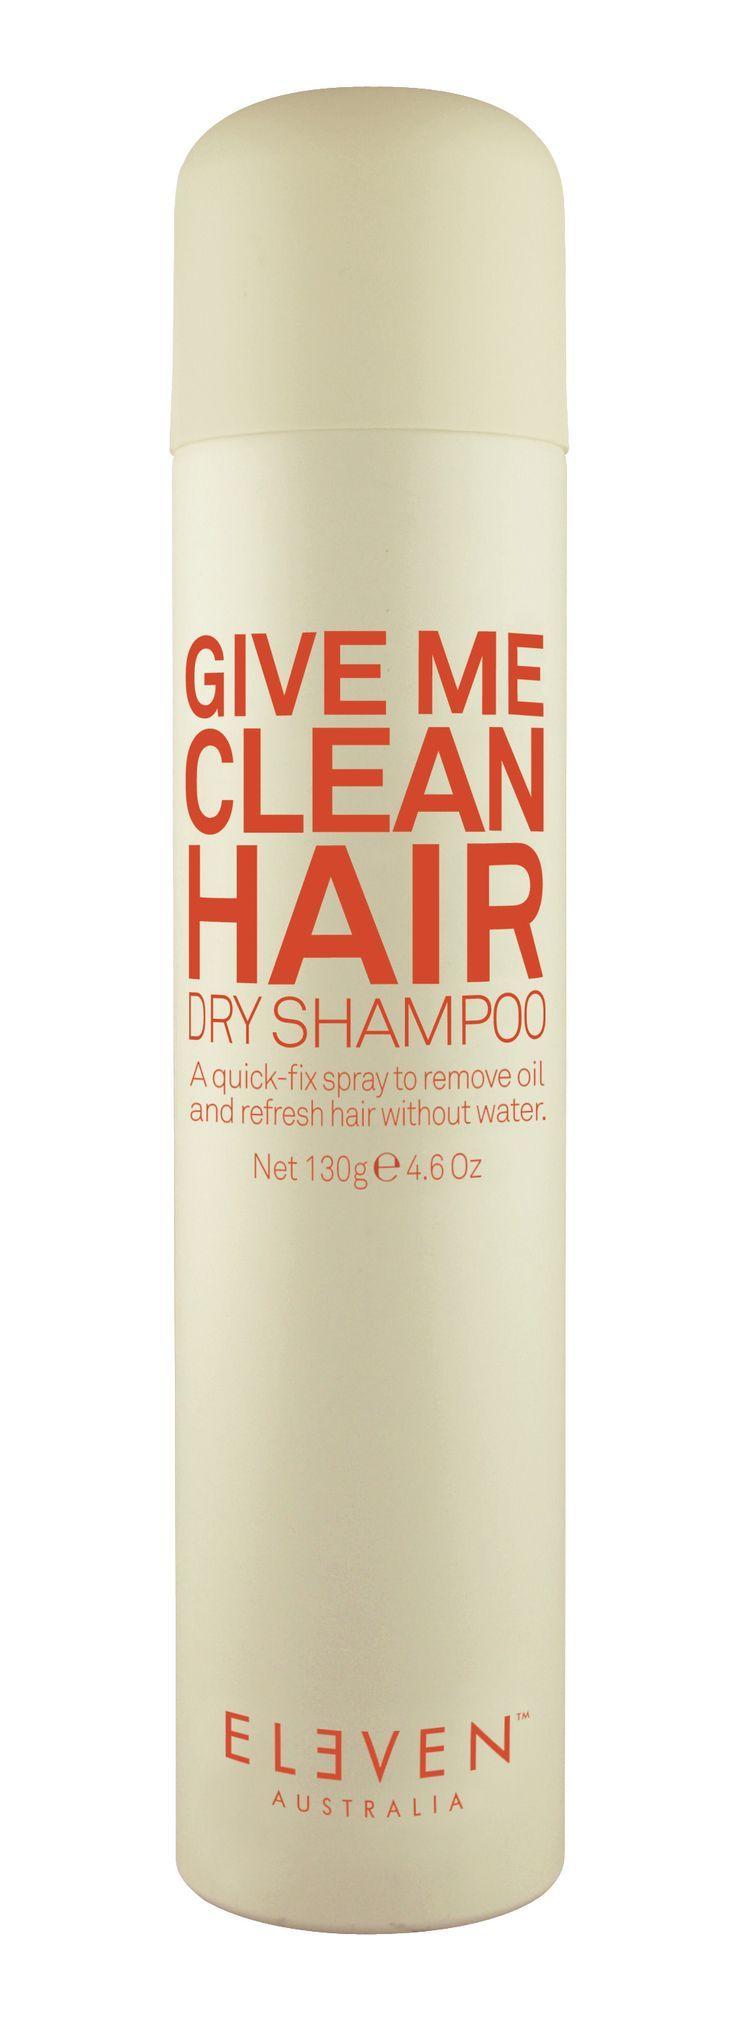 Give me clean hair dry shampoo 130g a quickfix spray to